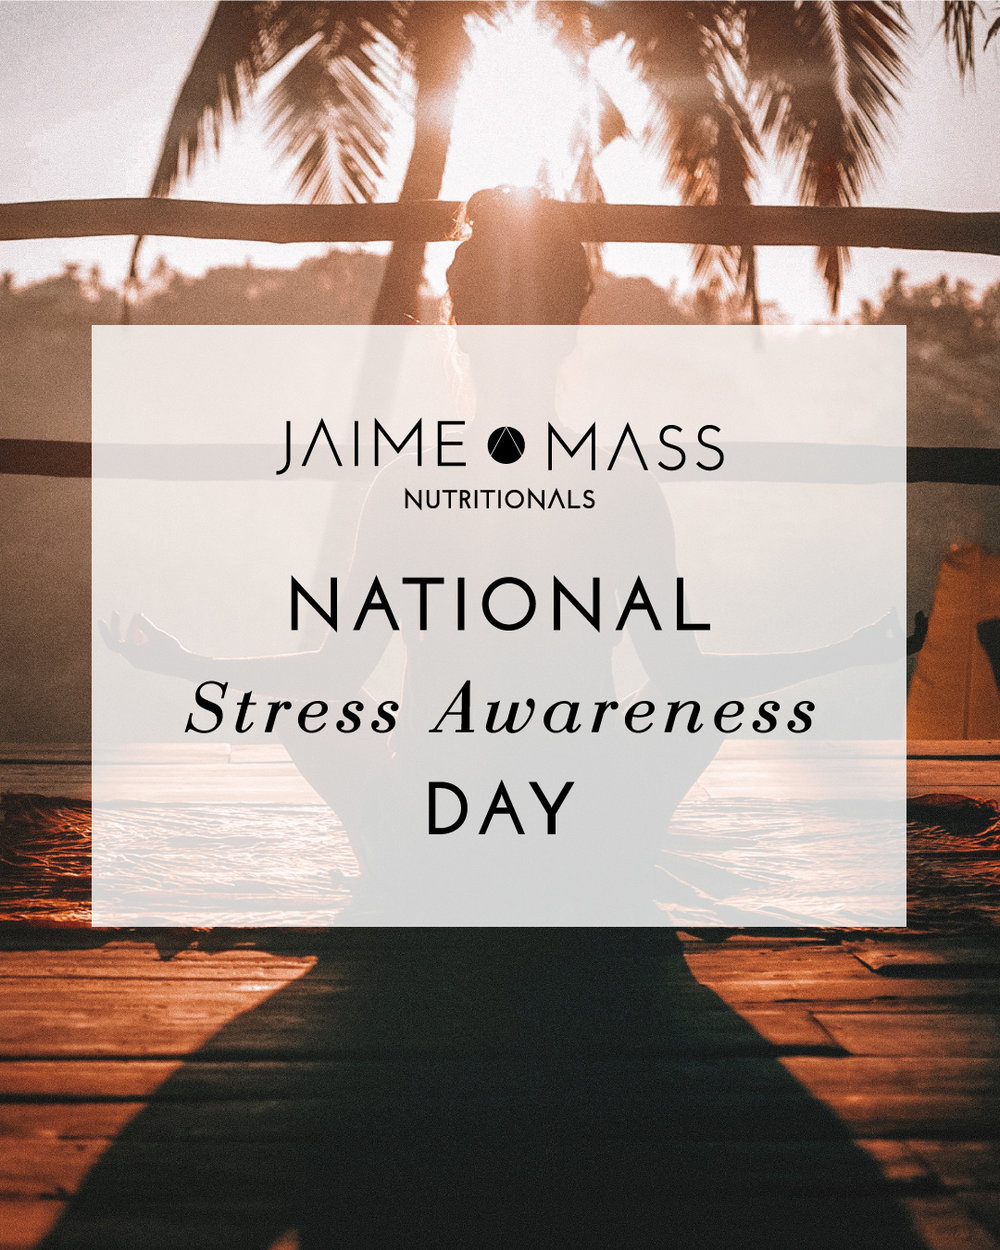 National Stress Awareness Day - Jaime Mass Nutritionals